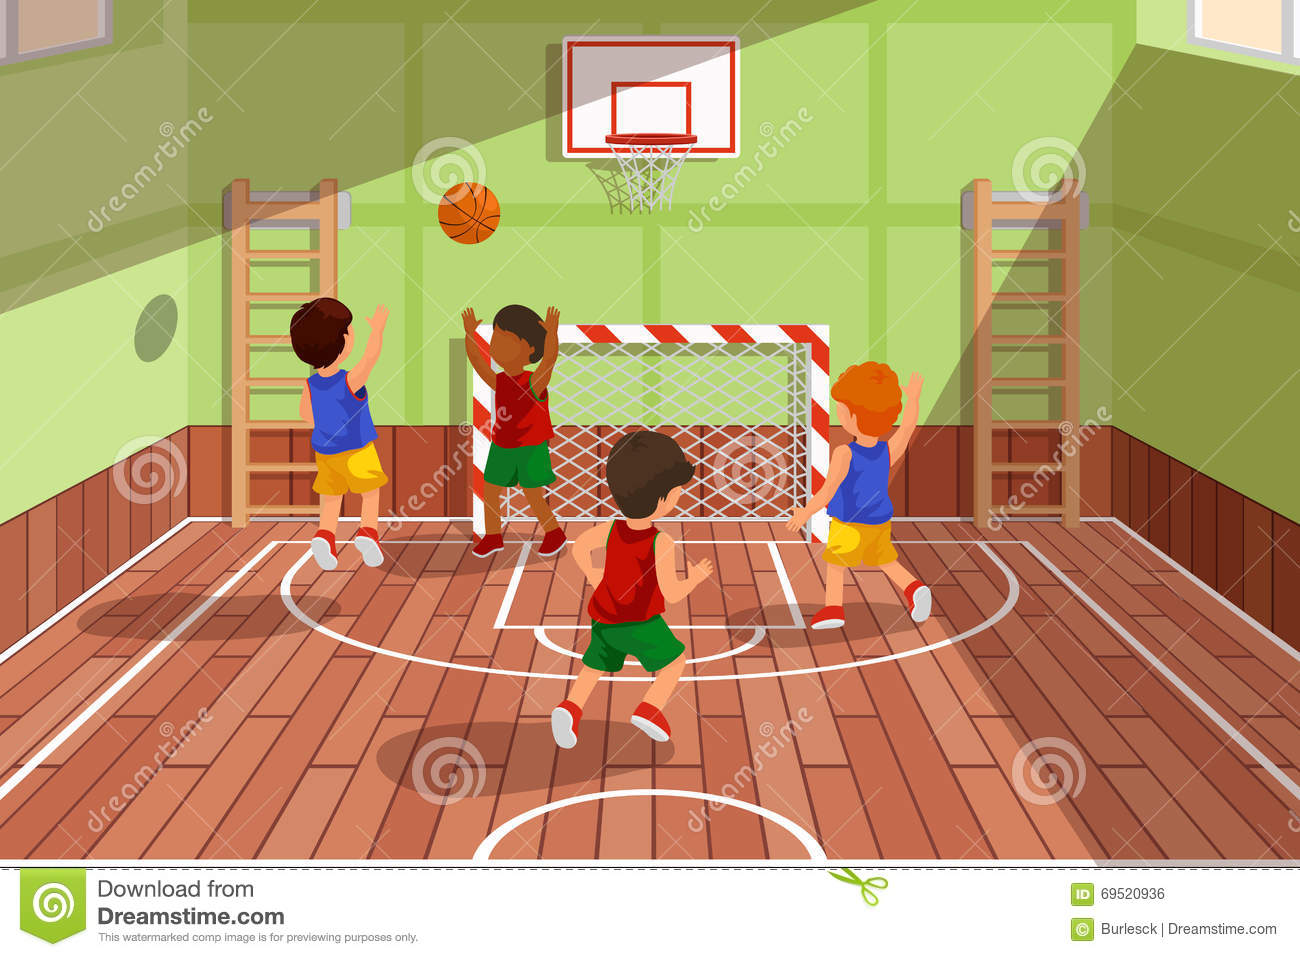 School basketball team playing game kids are